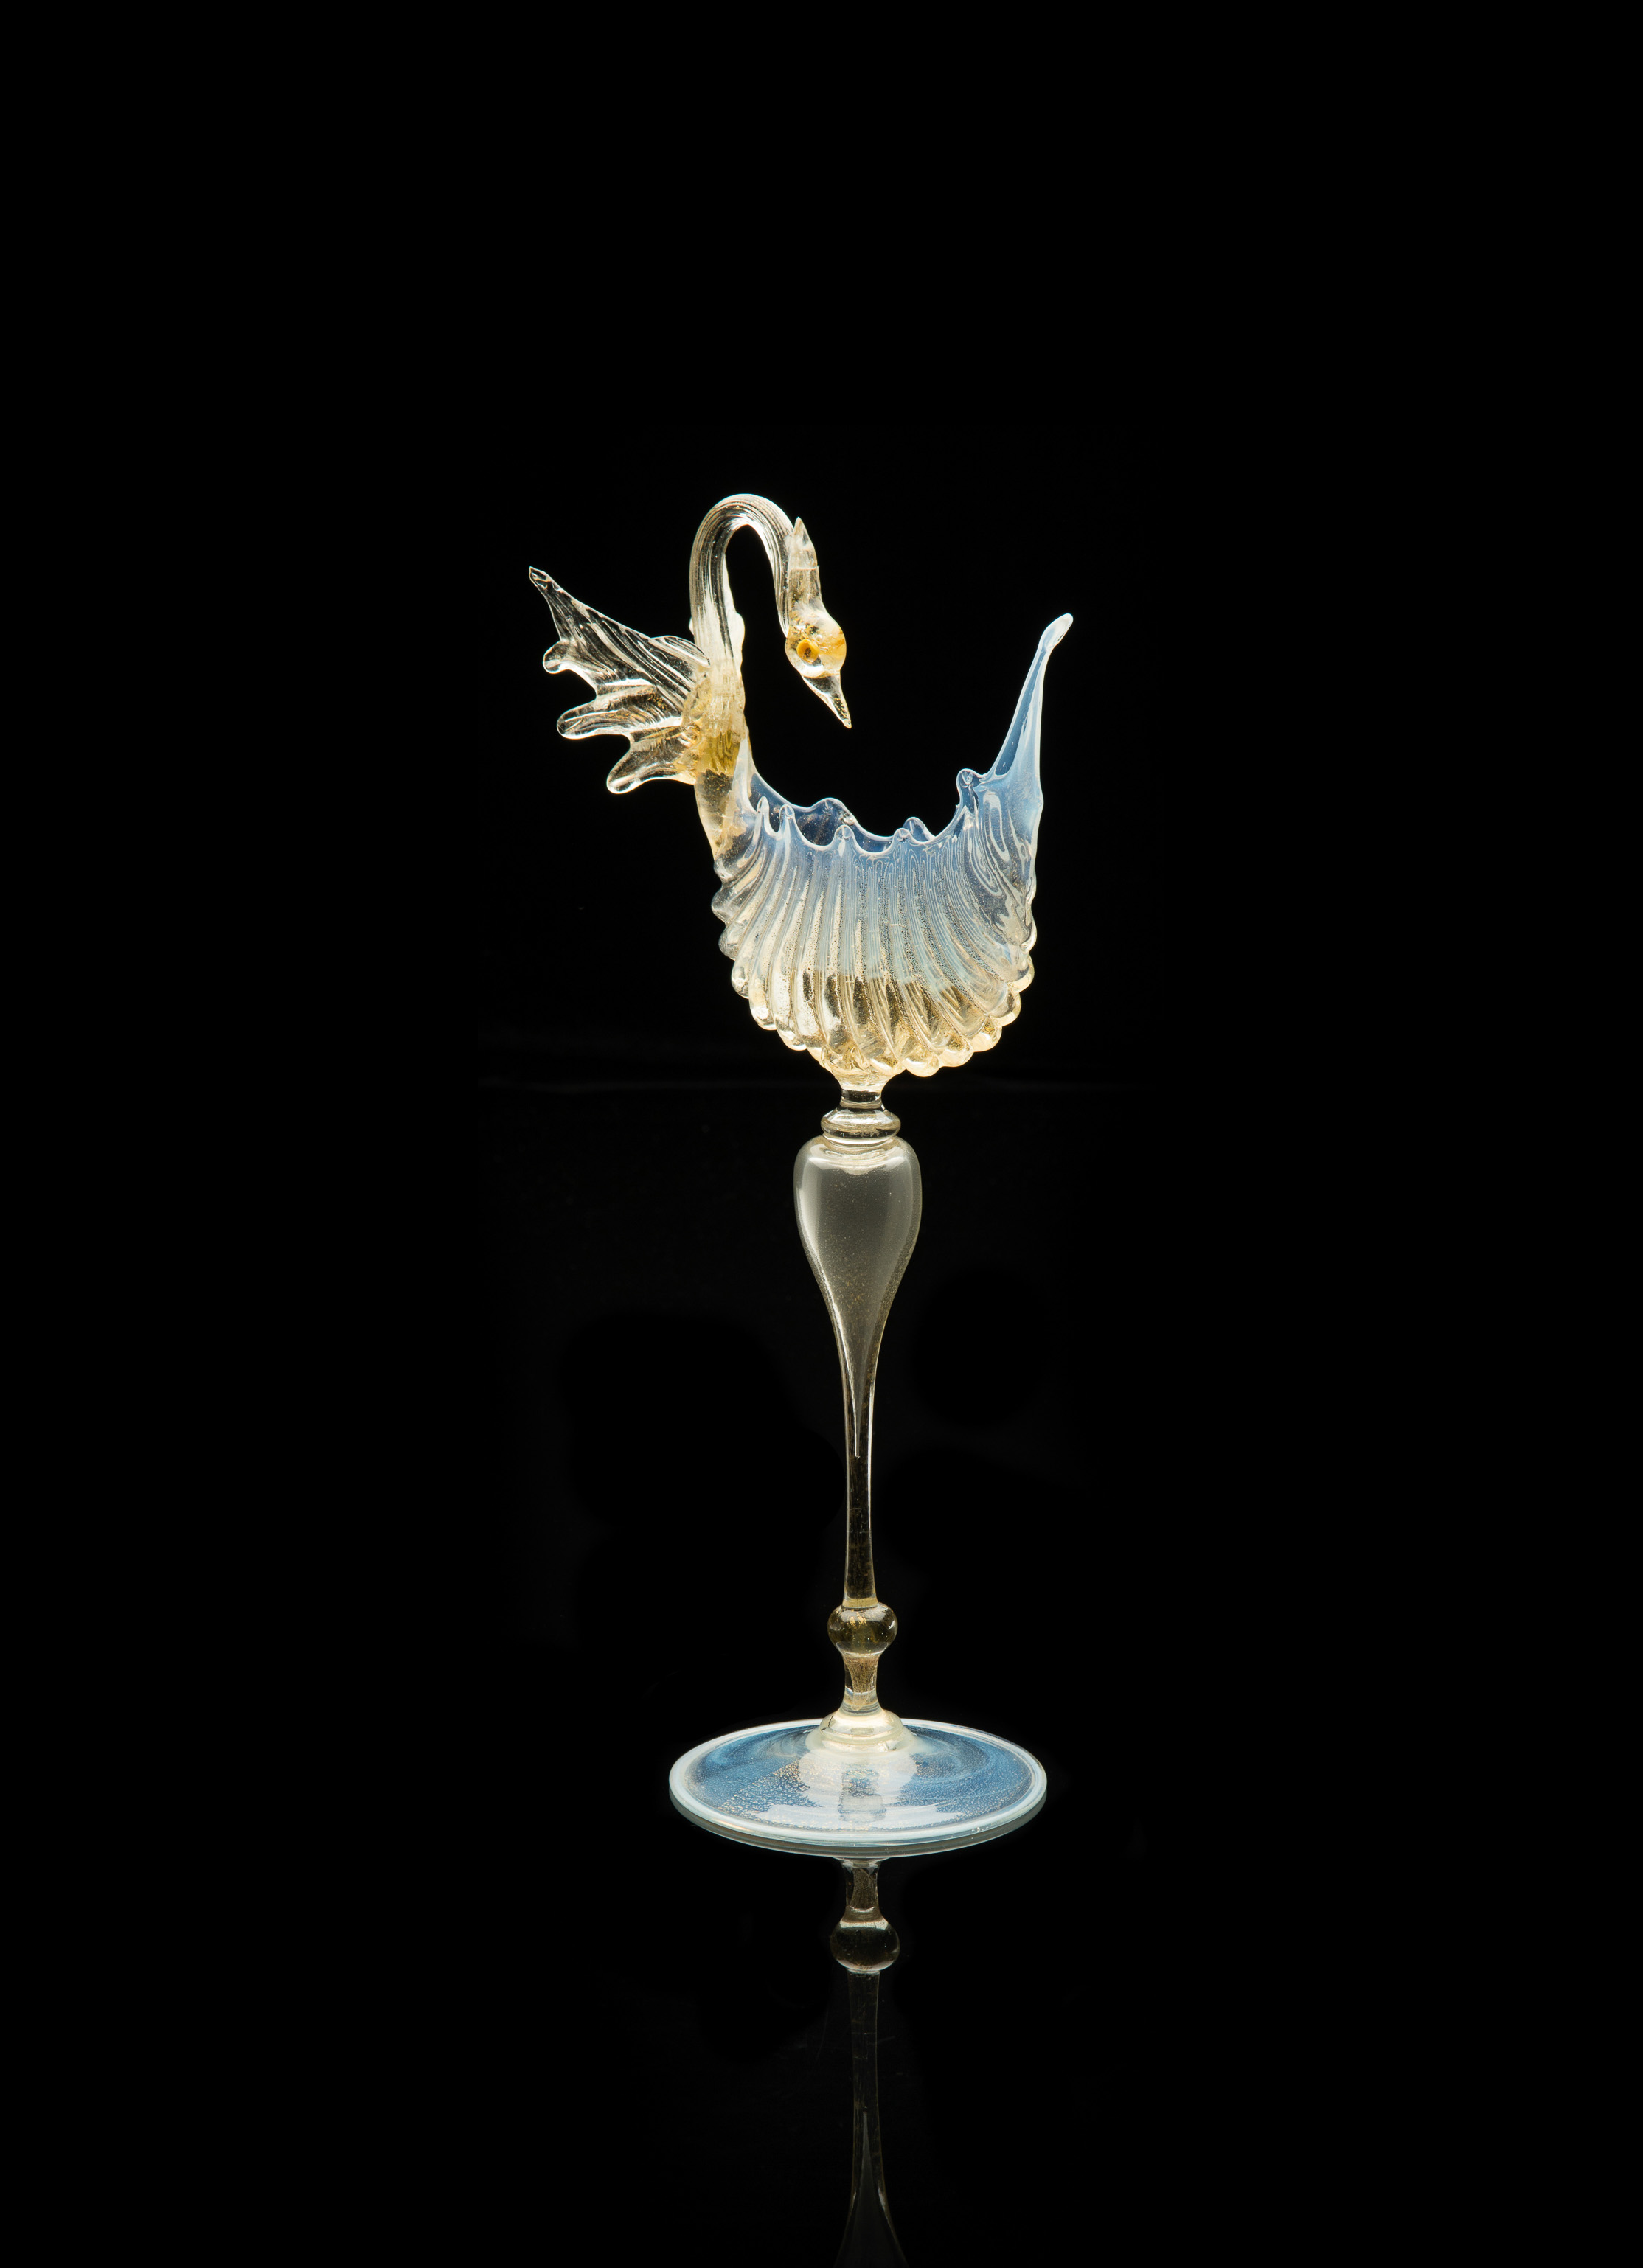 Salviati and Company, Scalloped Shell Vase with Swan (circa 1885, glass, 15 inches), VV.587